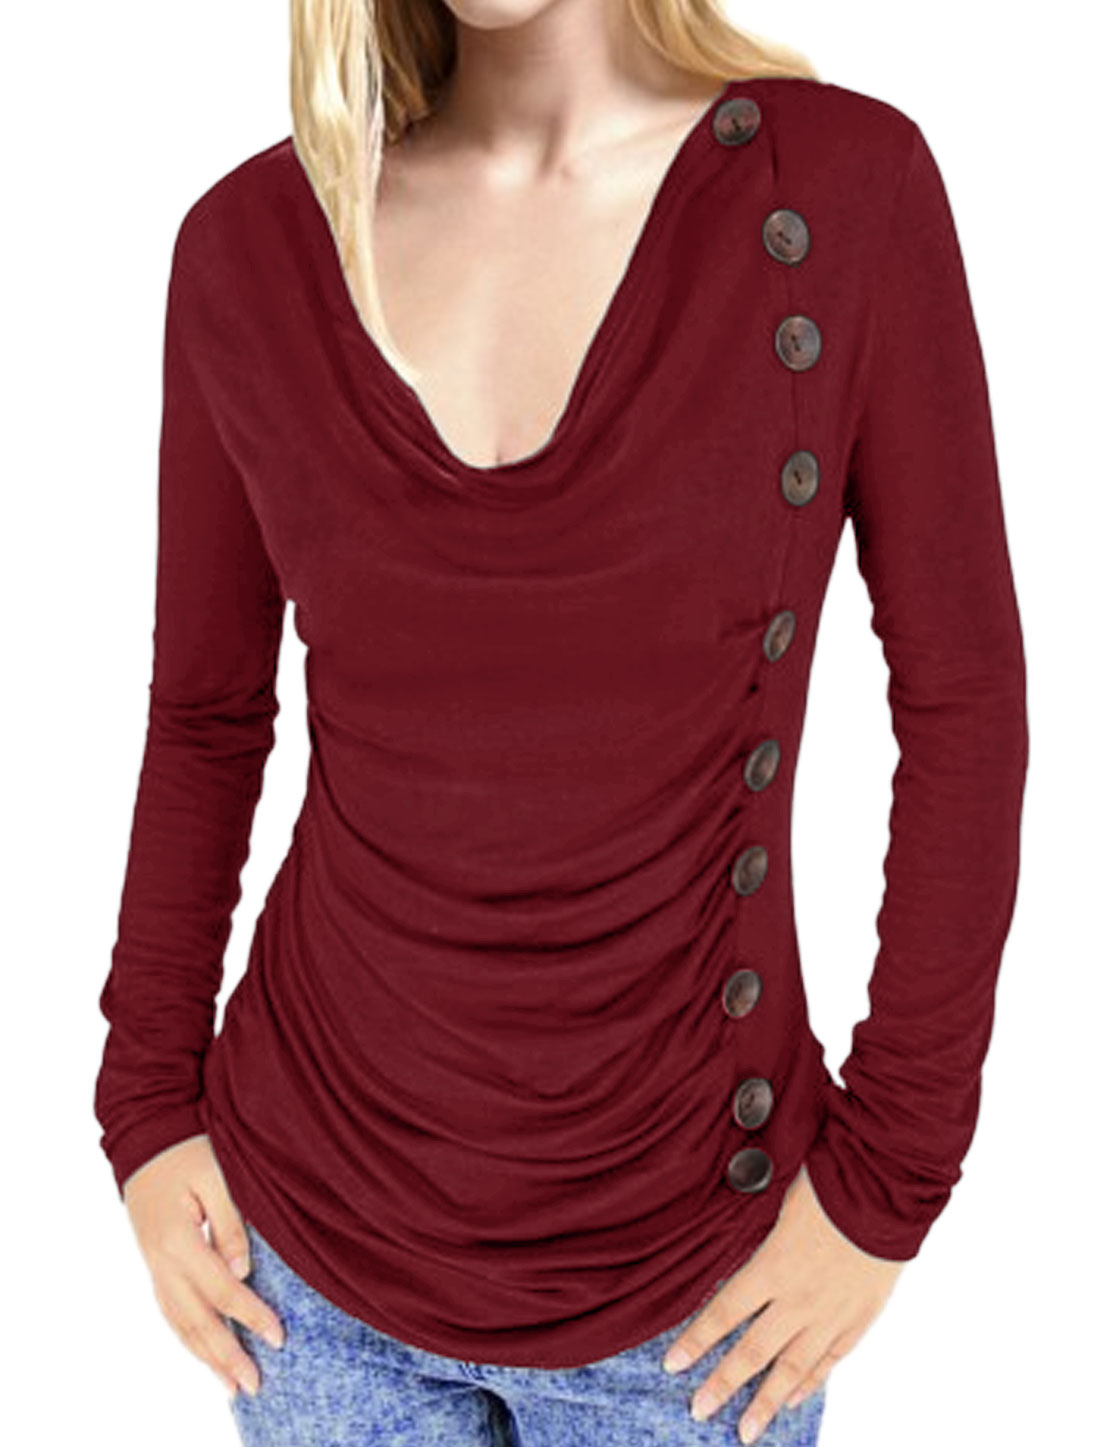 Ladies Cowl Neck Button Decor Ruched Front Slim Fit Leisure Tunic Top Burgundy M